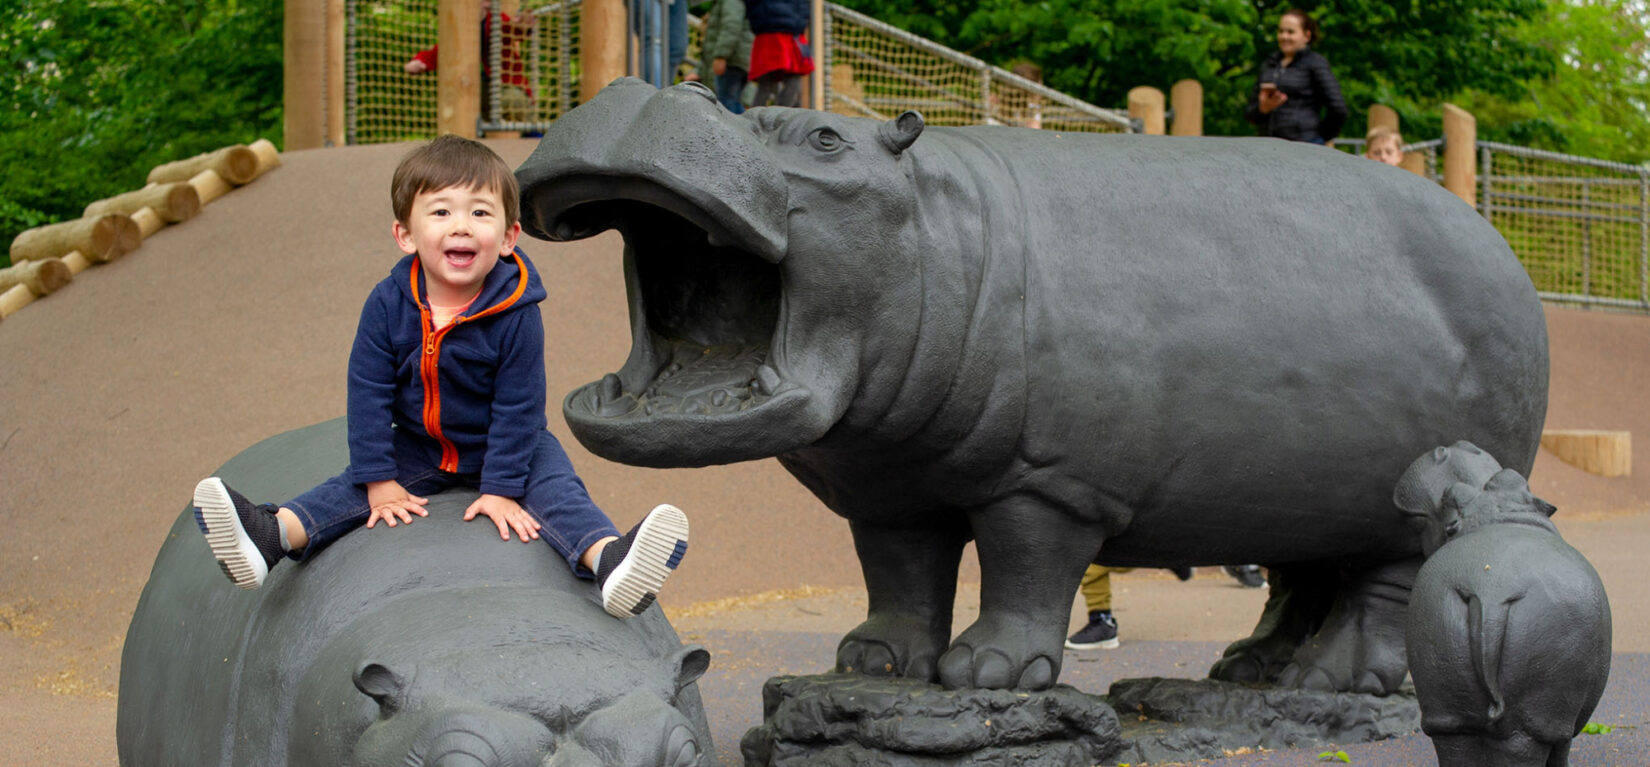 A young boy straddles one of the hippos of the playground